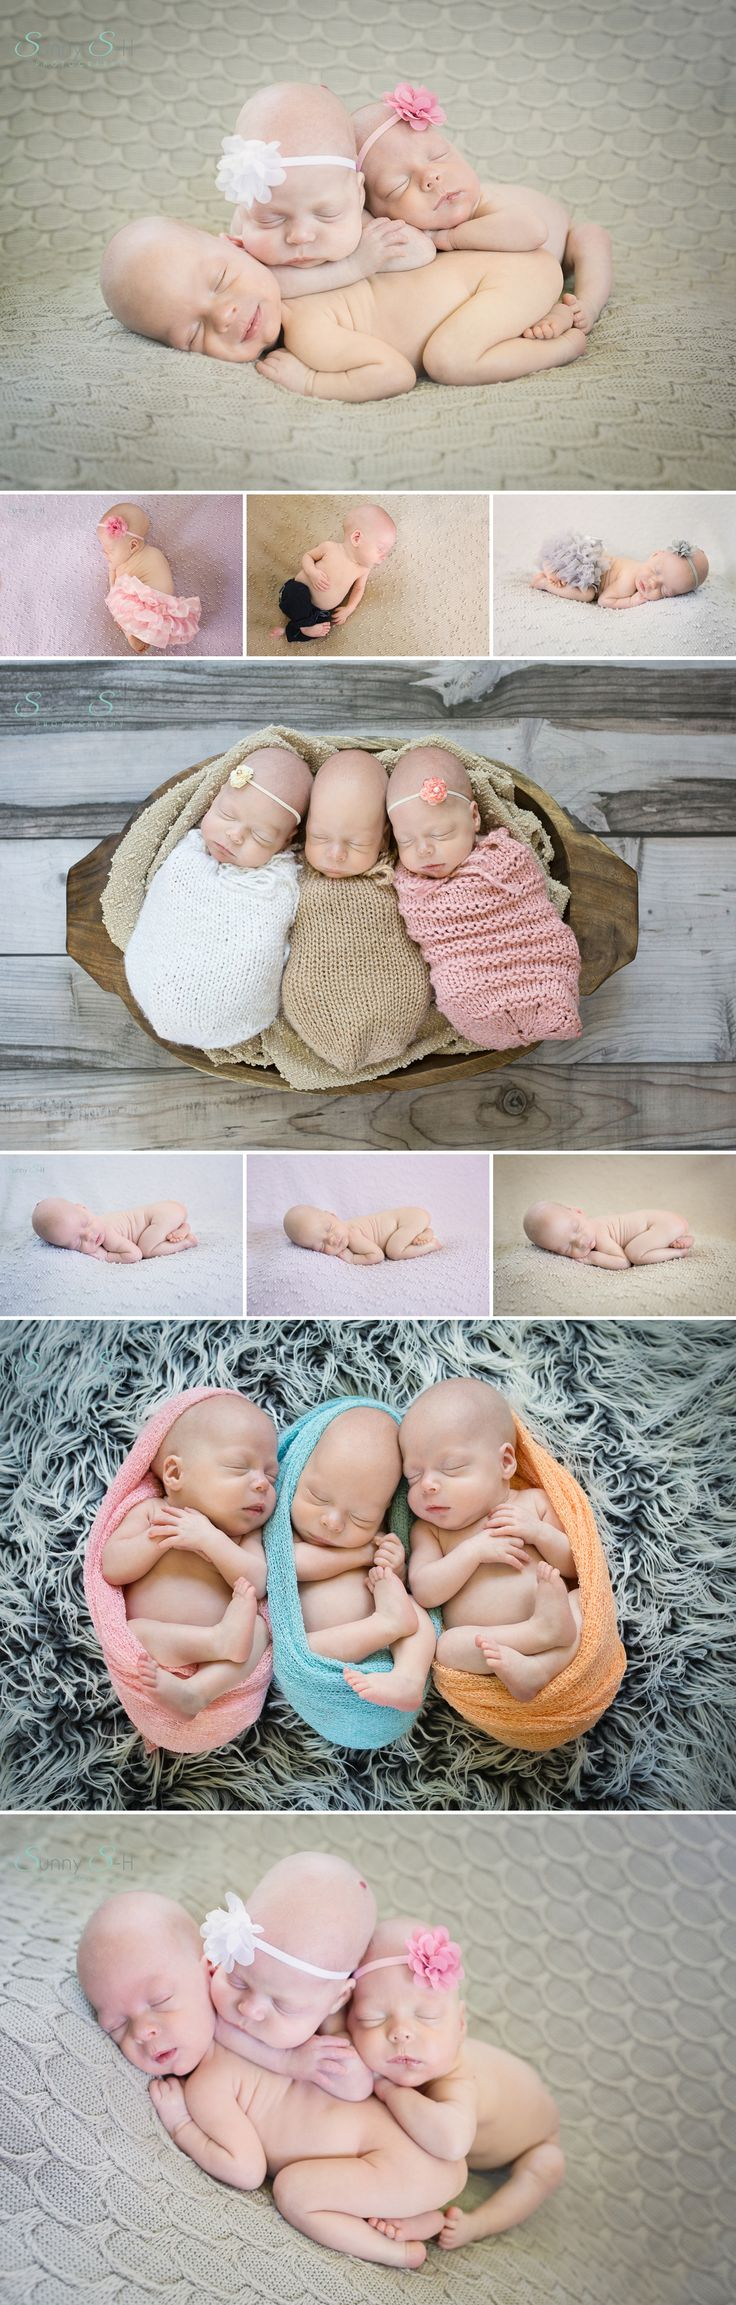 newborn triplet photography.  In home baby photo session with 2 month old boy and identical girl triplets